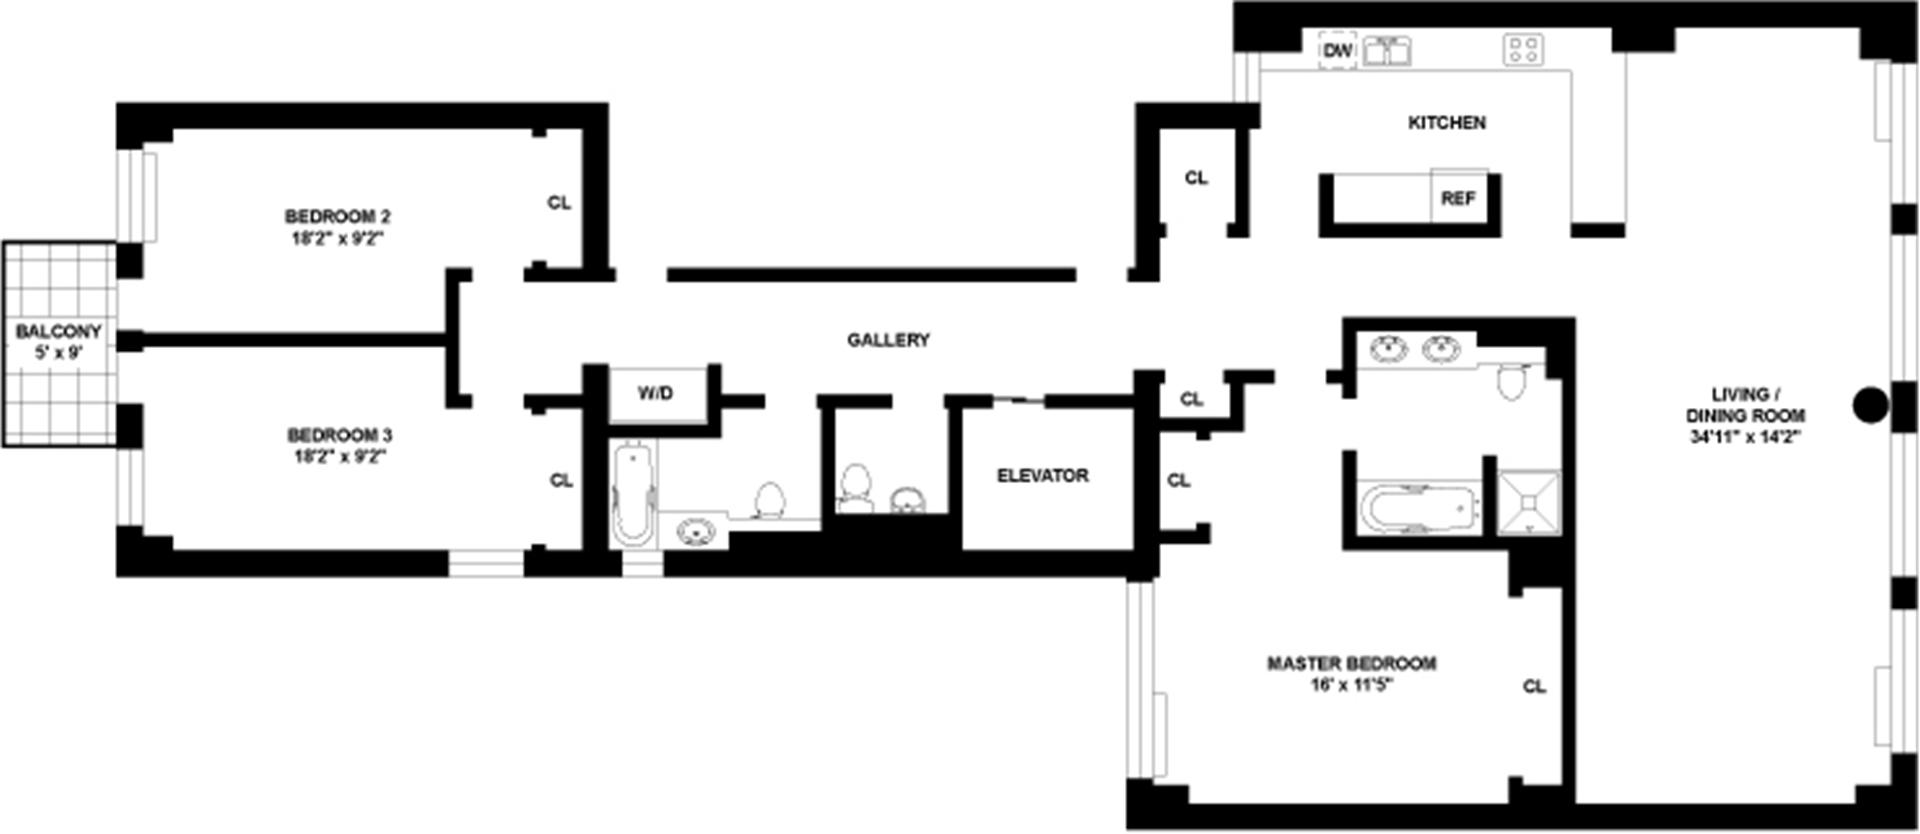 Floor plan of 330 East 57th Street, 330 East 57th St, 12FL - Sutton Area, New York